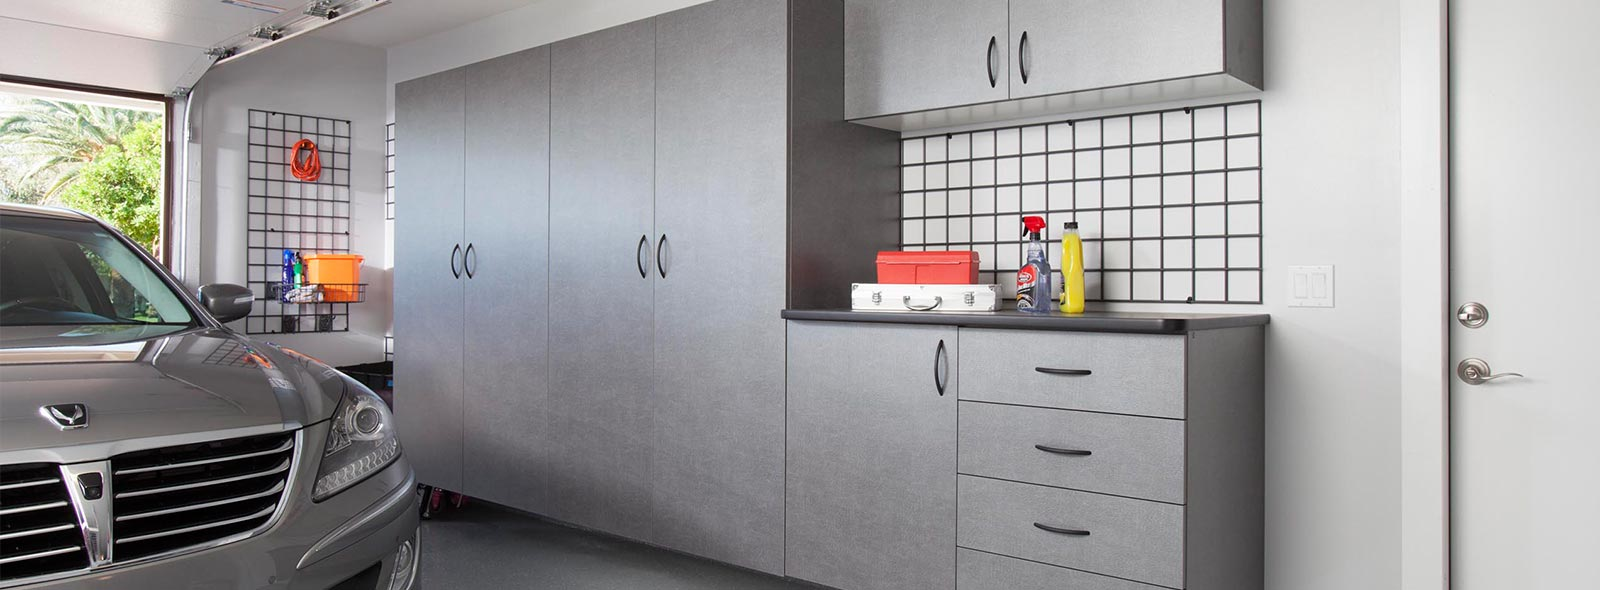 Pewter Garage Cabinets